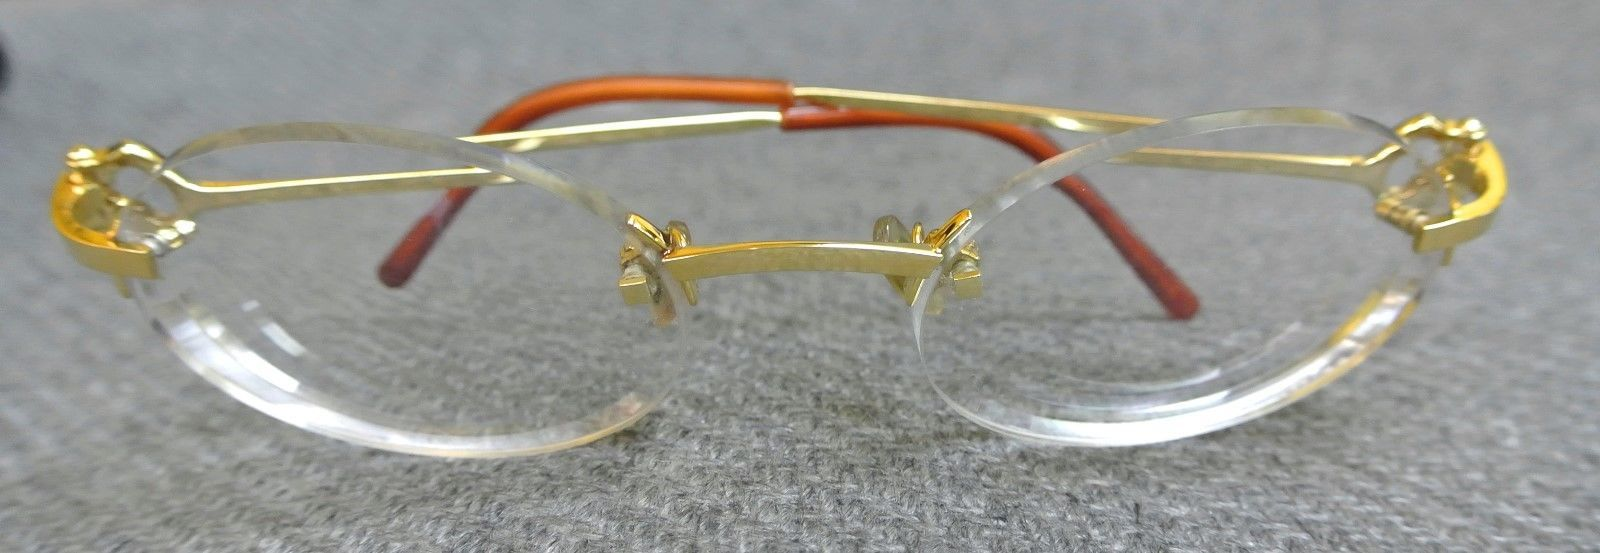 Cartier eyeglasses gold frames w oval lens with carry case https://t.co/ioH8OumOzN https://t.co/wvdyw31pV1